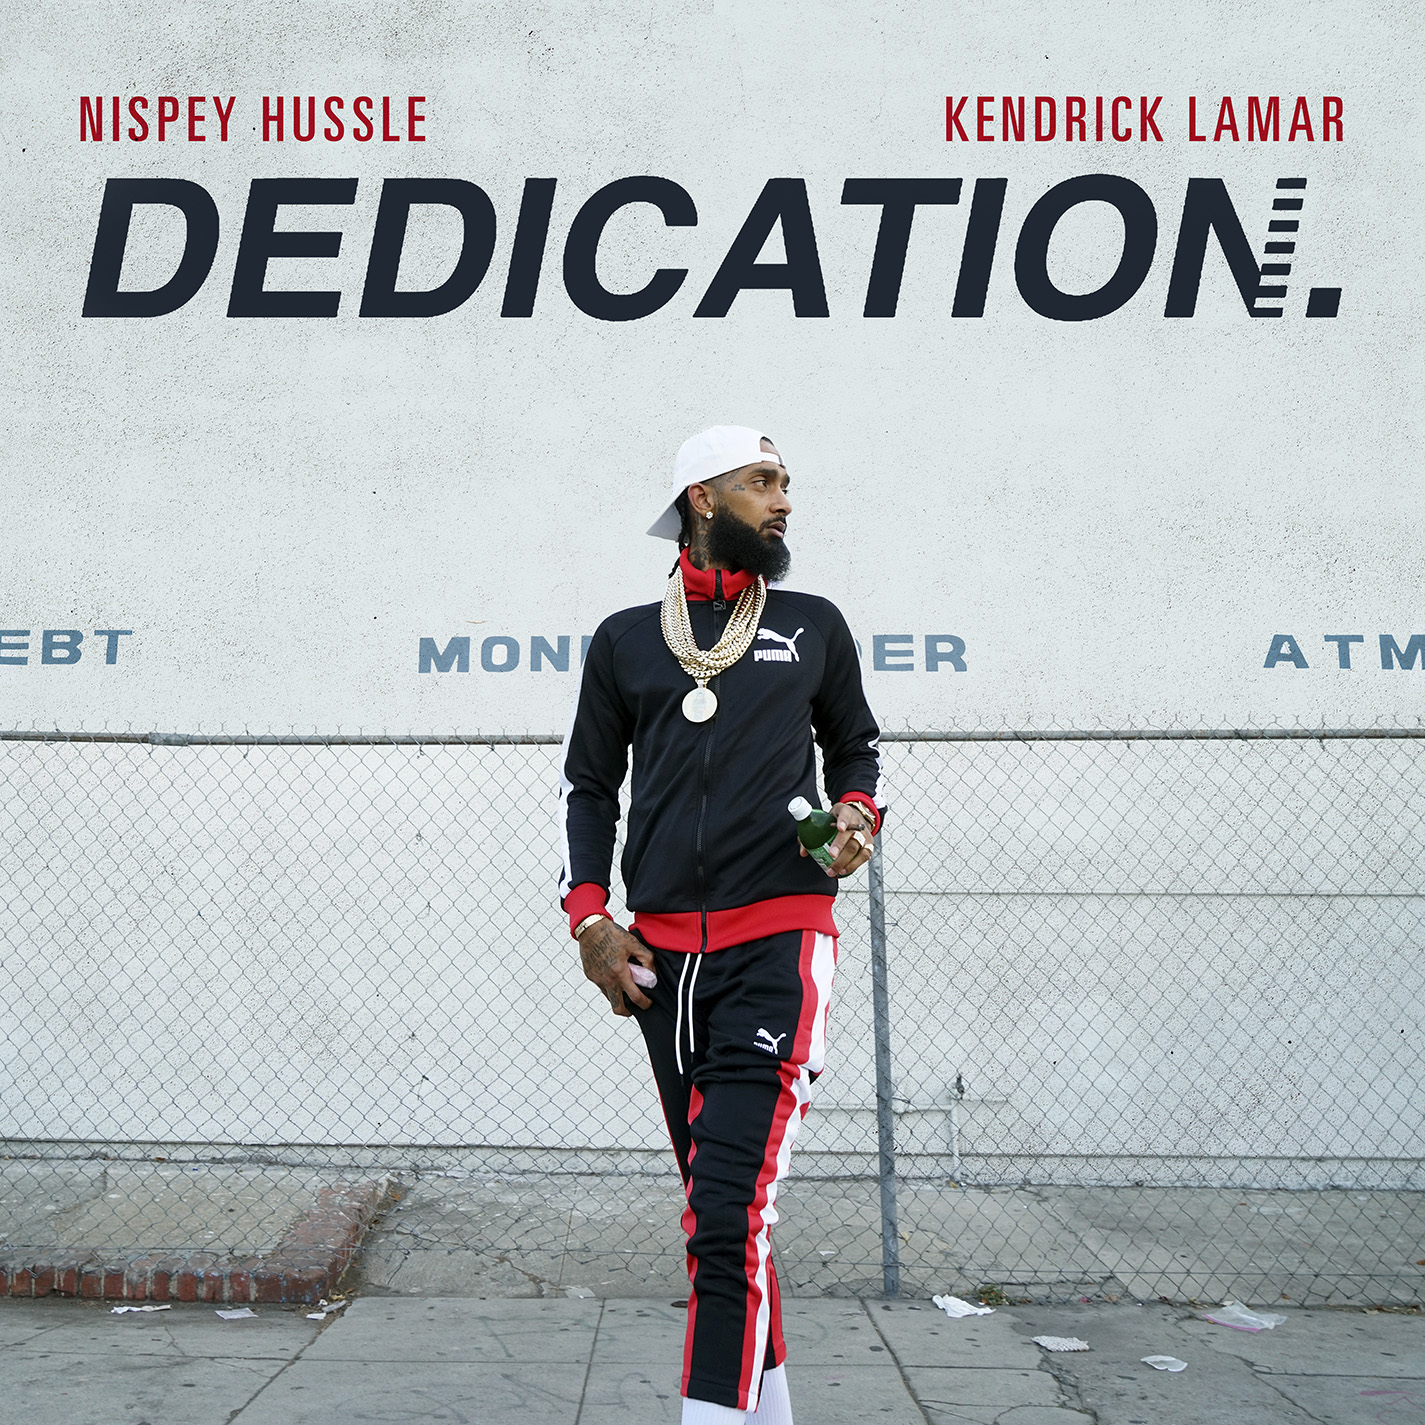 Nipsey Hussle - Dedication single art